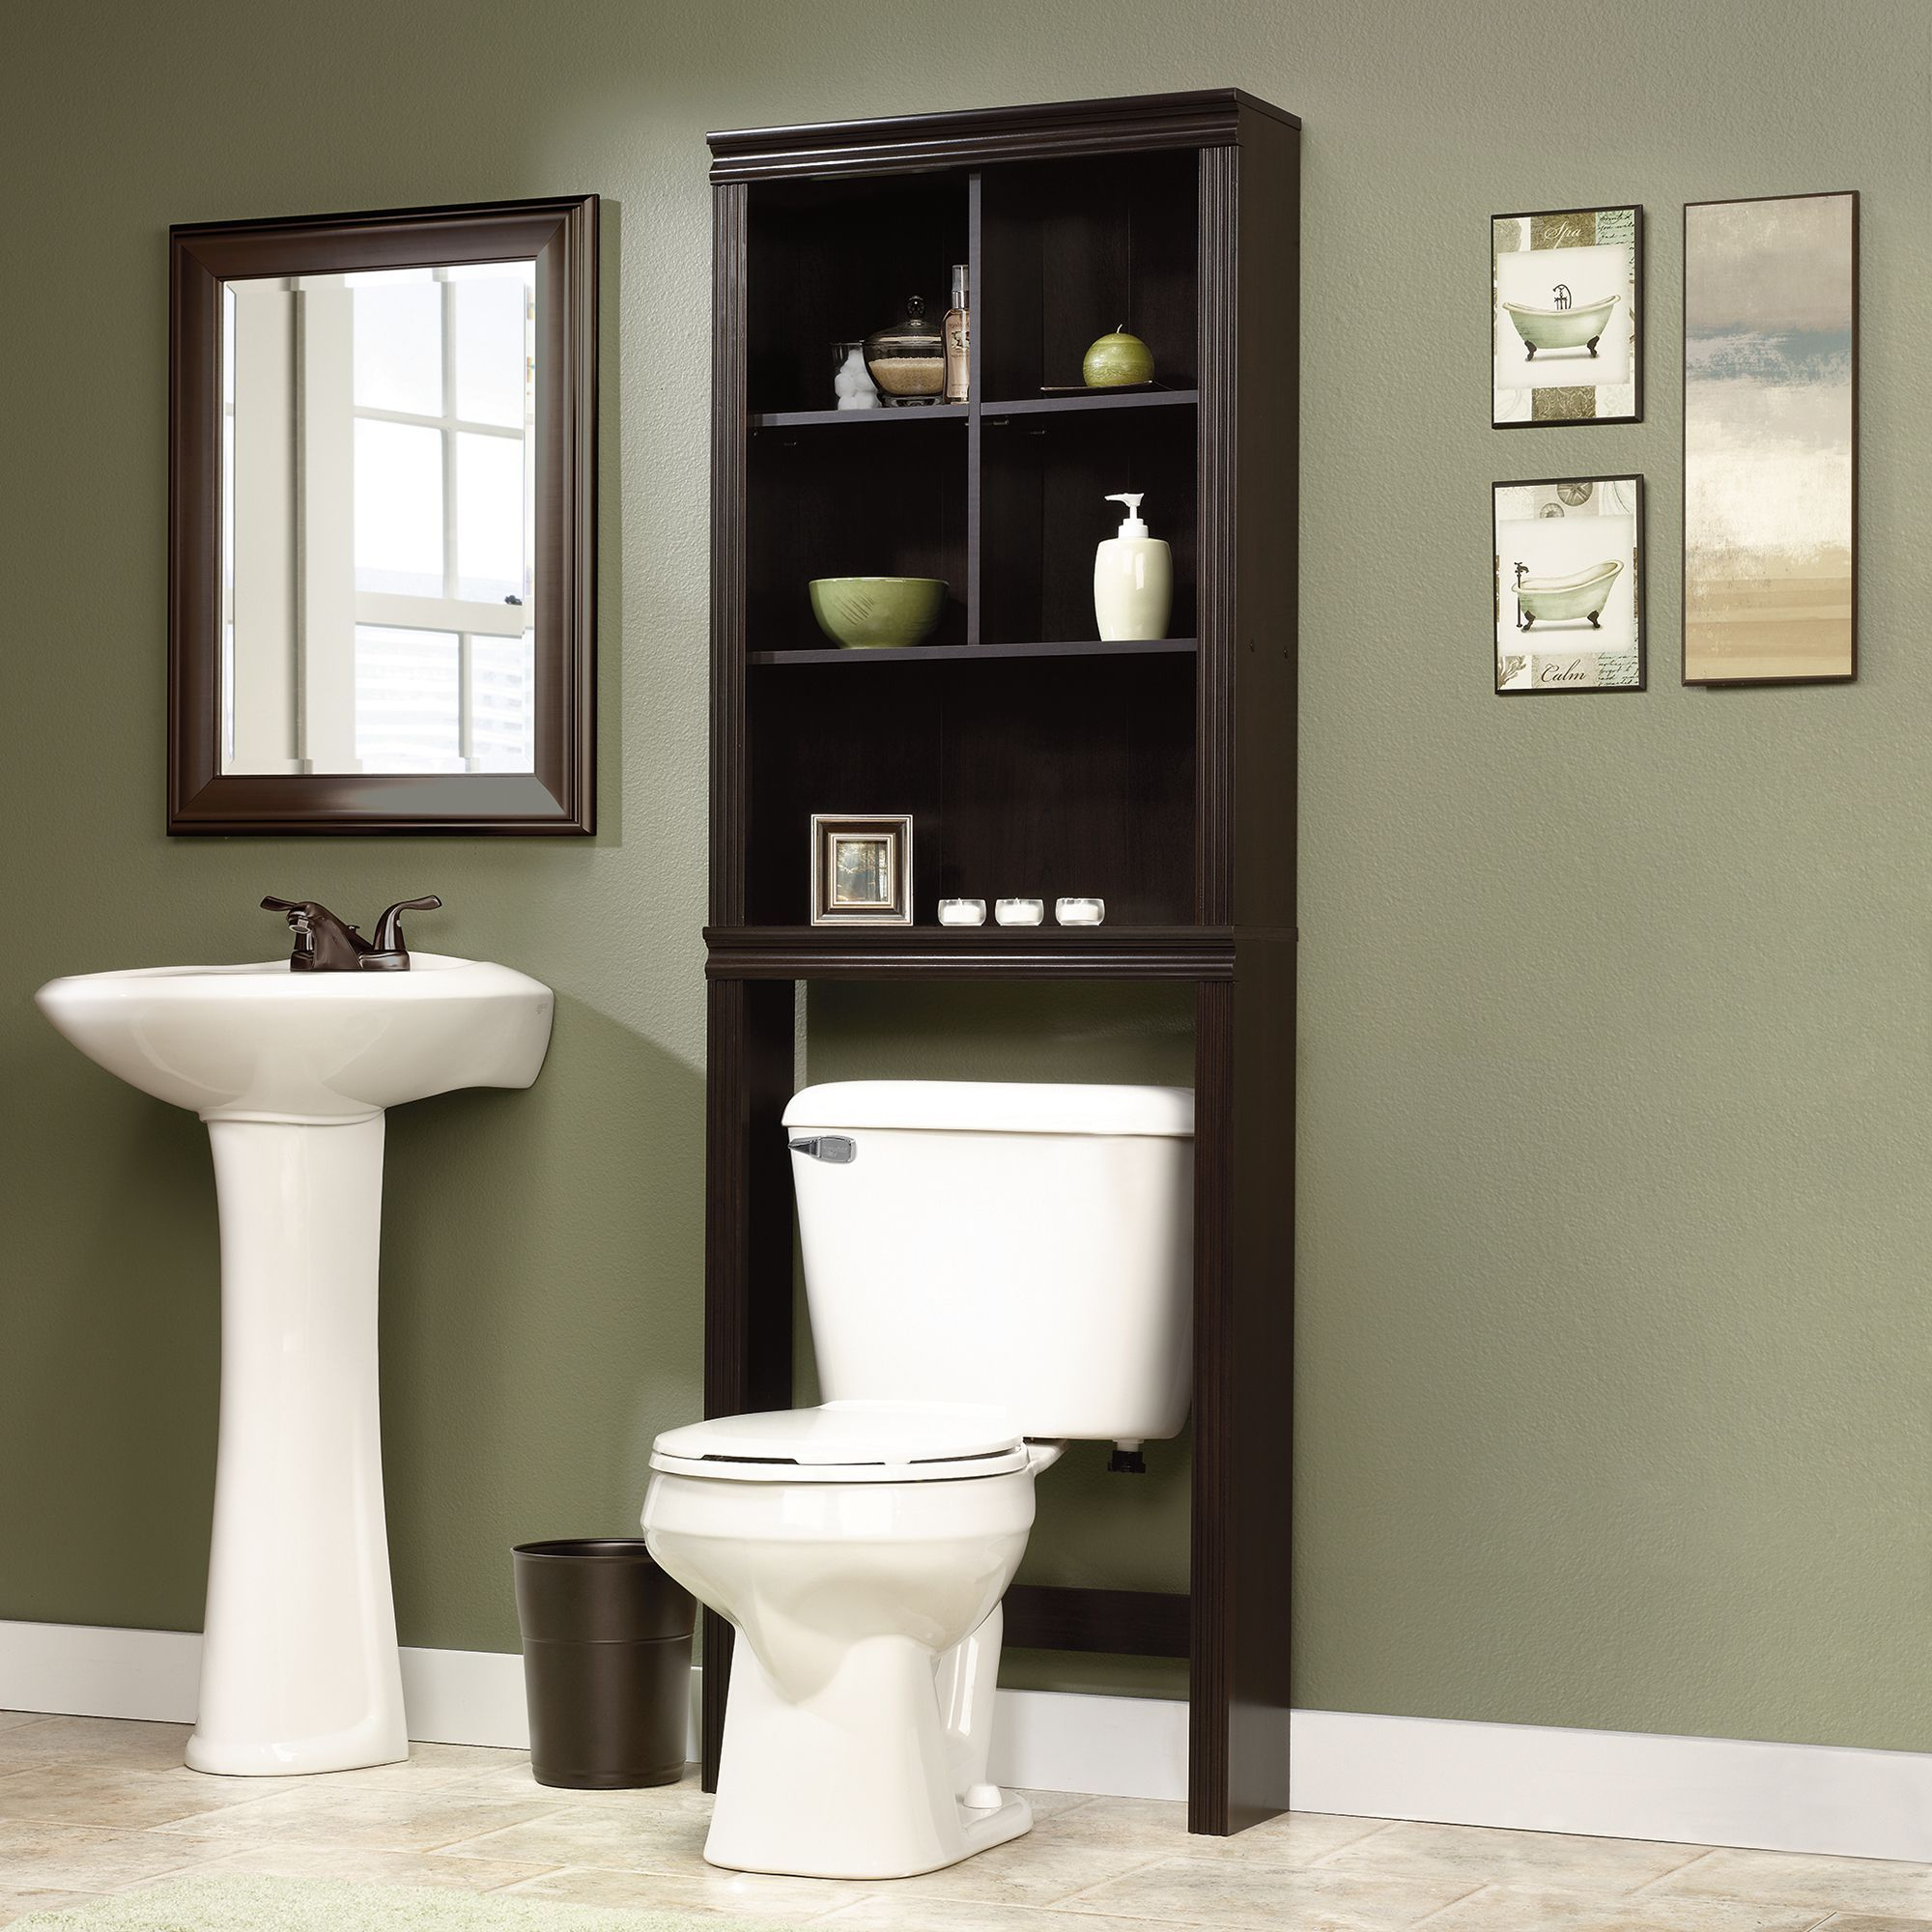 Interesting Toilet Etagere For Your